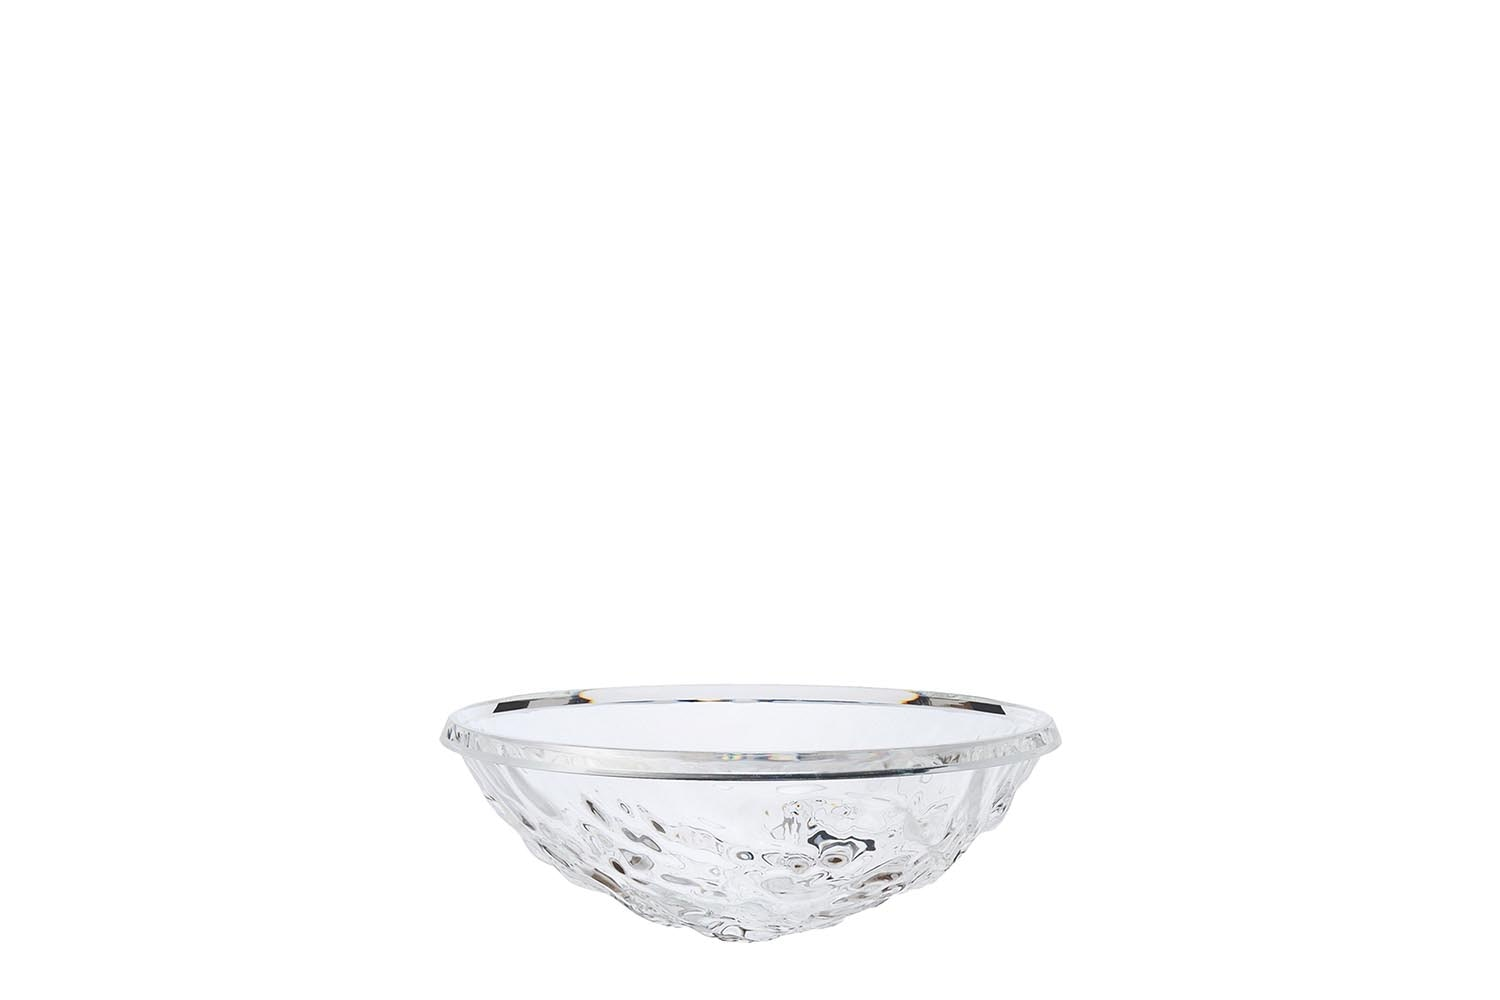 Moon Bowl by Mario Bellini for Kartell